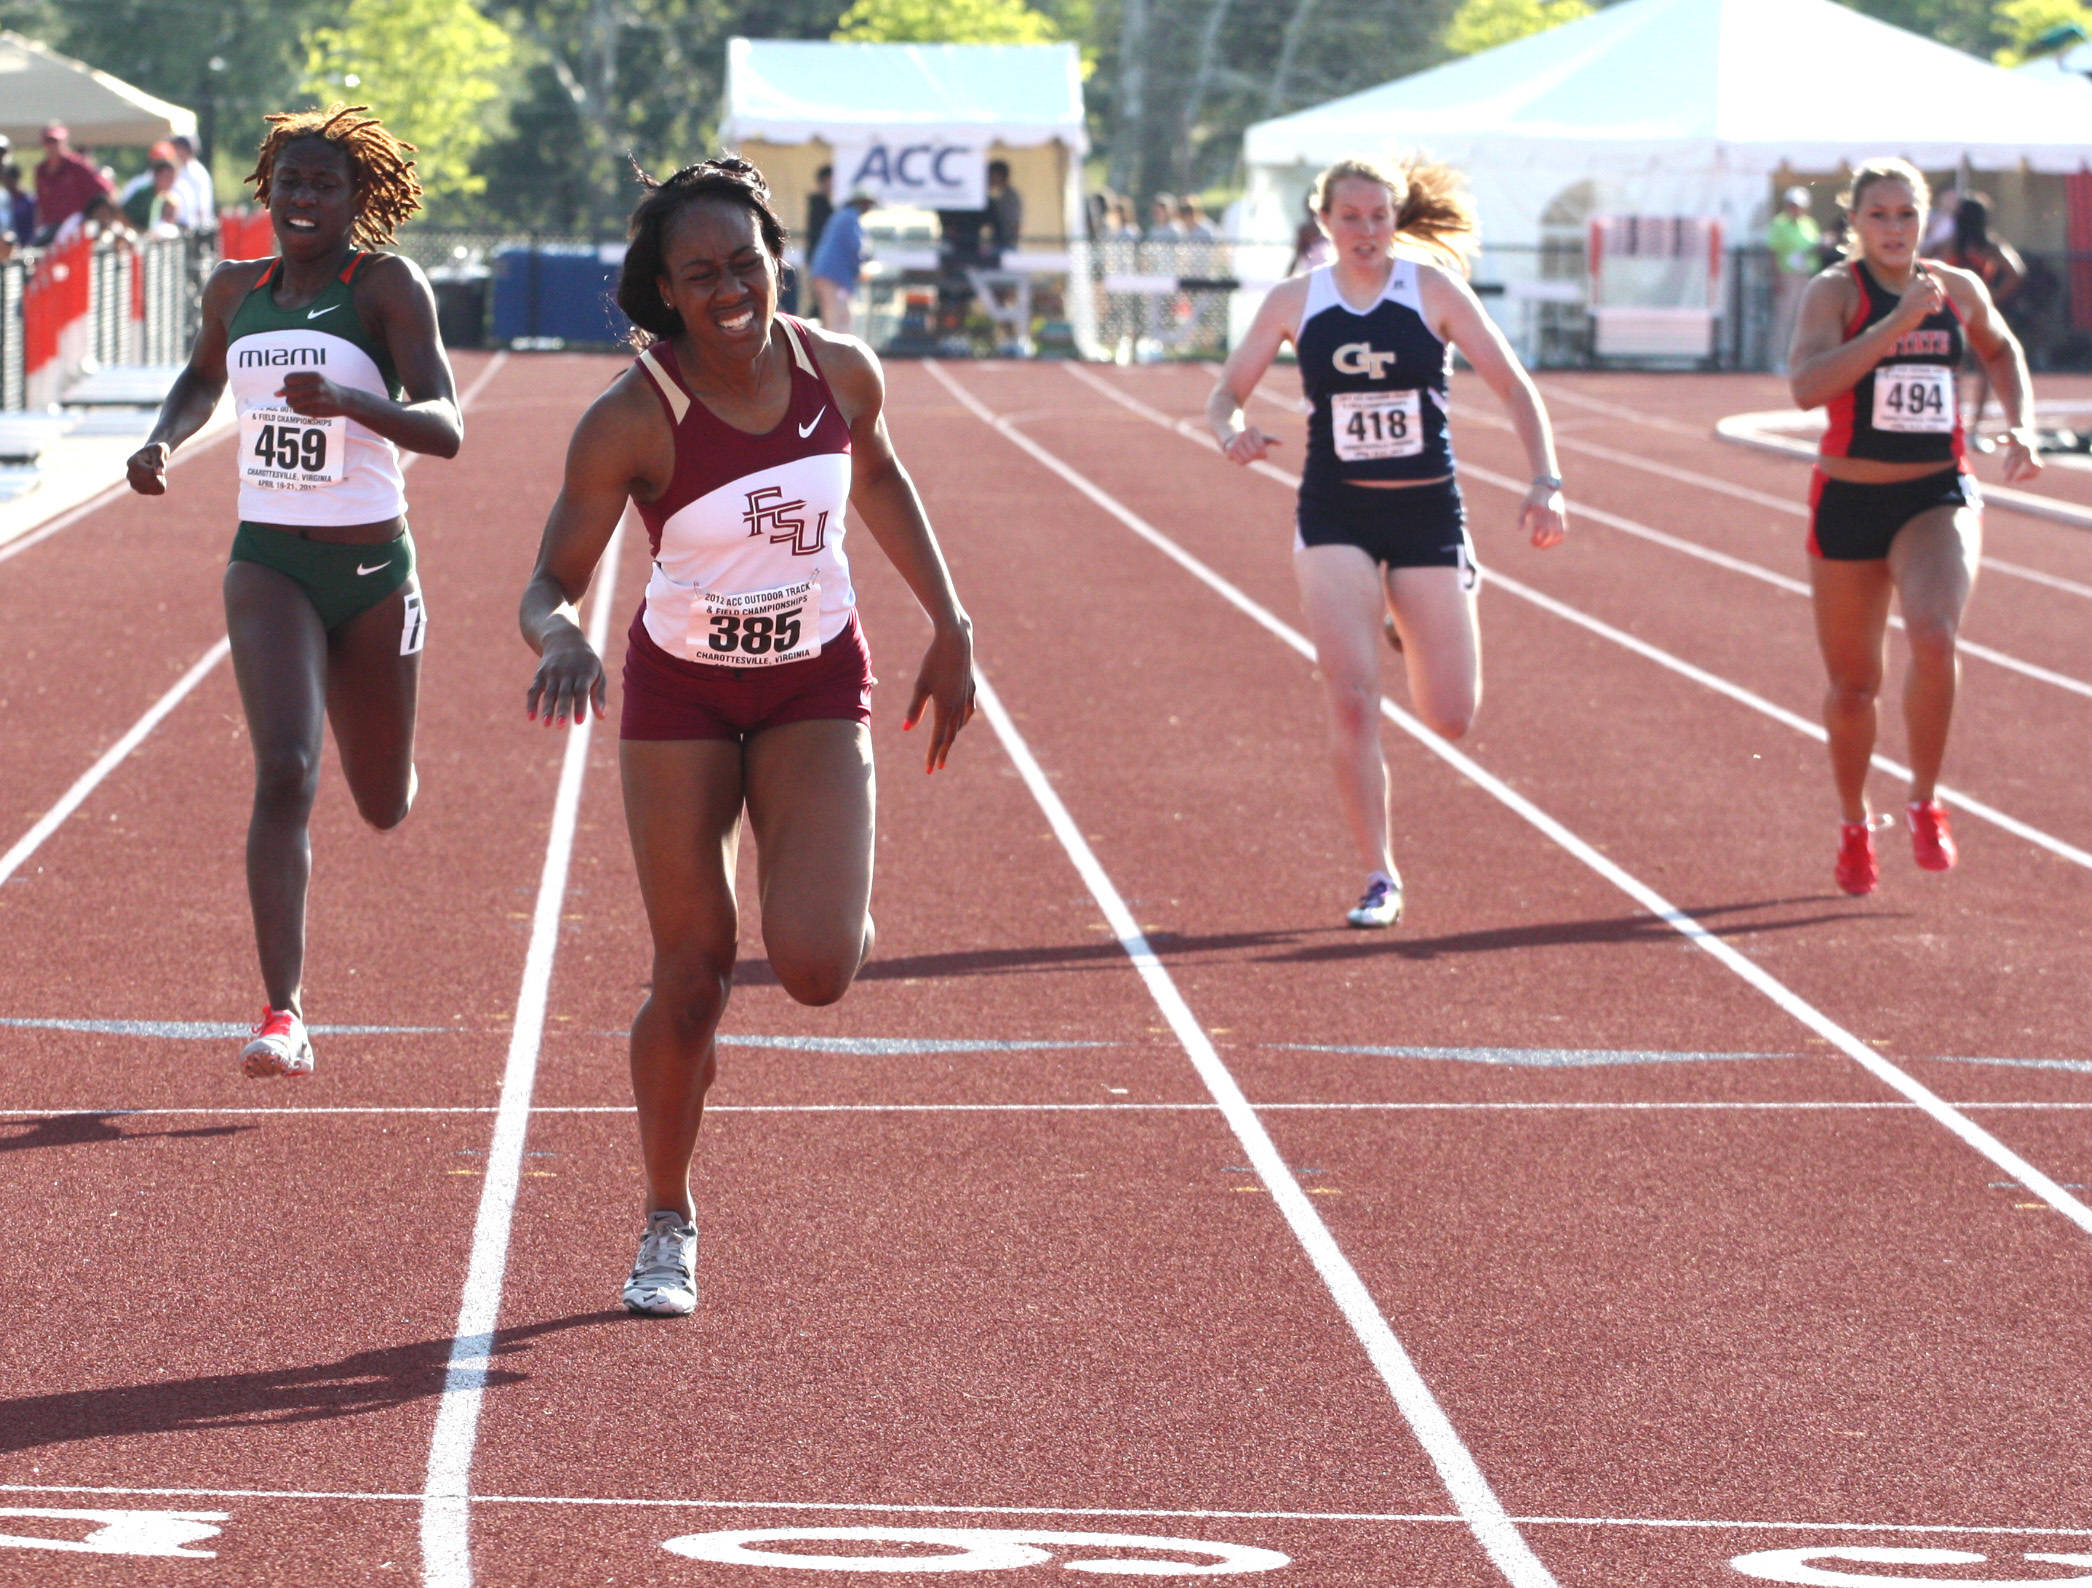 Sophomore Elizabeth Ichite strains to hold on to the final qualifying spot during the 400-meter dash preliminary heat.